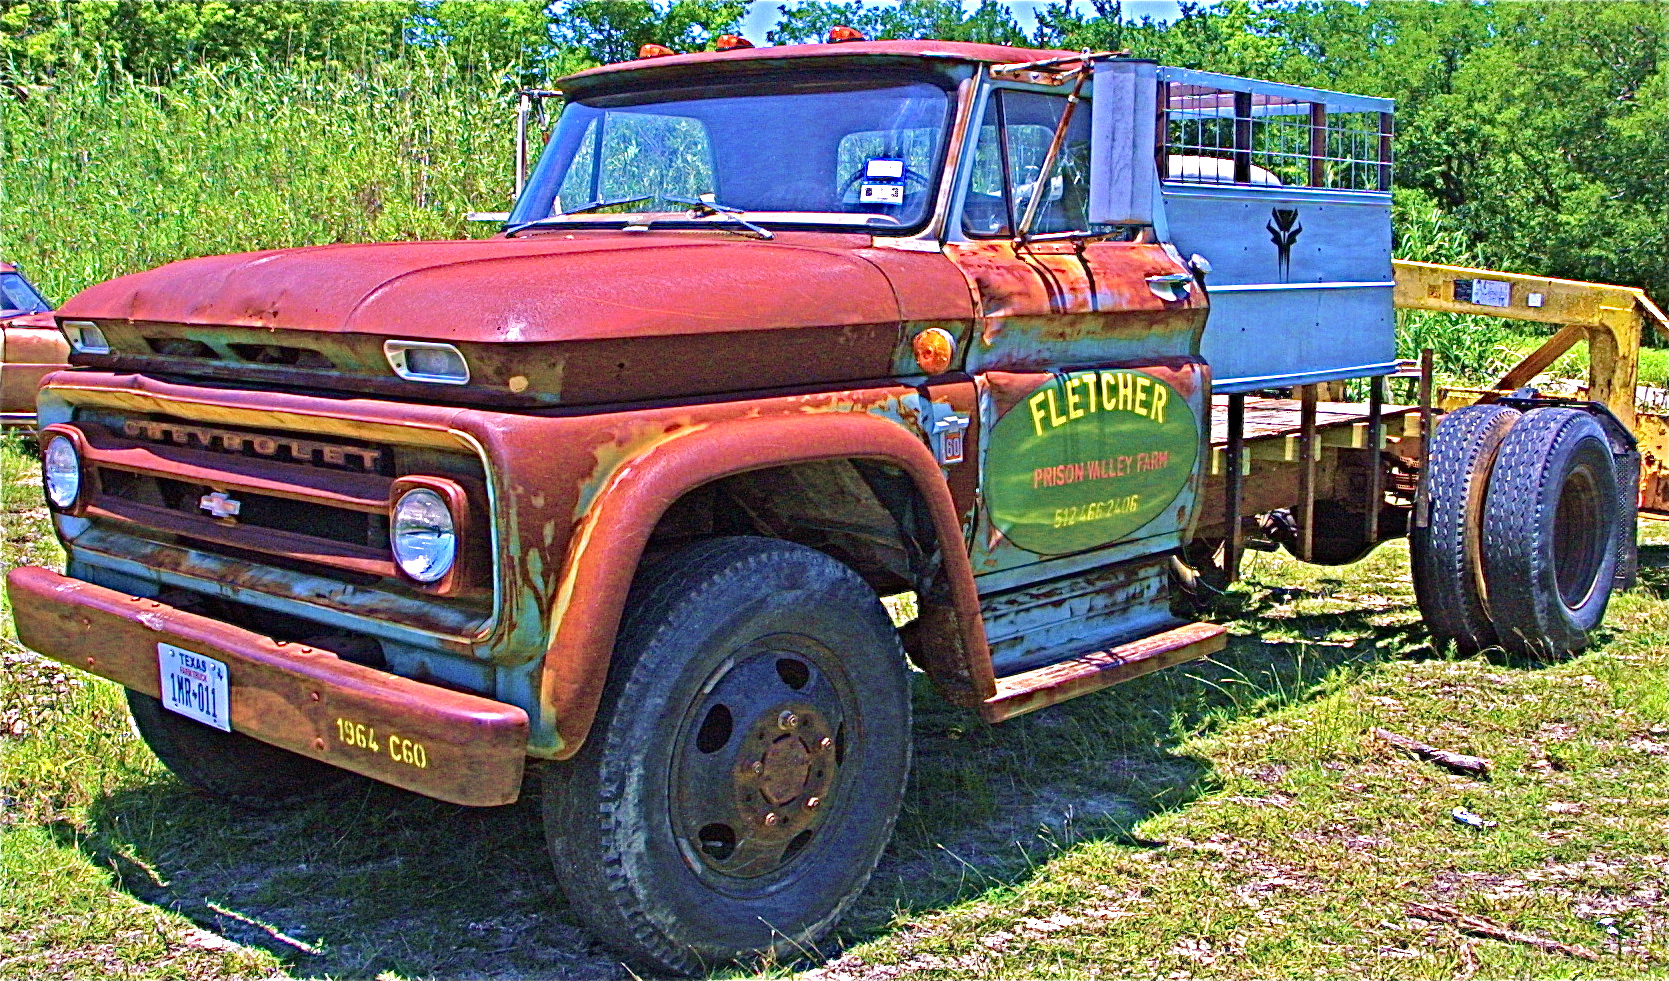 Cars For Sale Austin Tx >> 1964 Chevrolet C60 Truck in Far East Austin | ATX Car Pictures | Real Pics from Austin TX ...